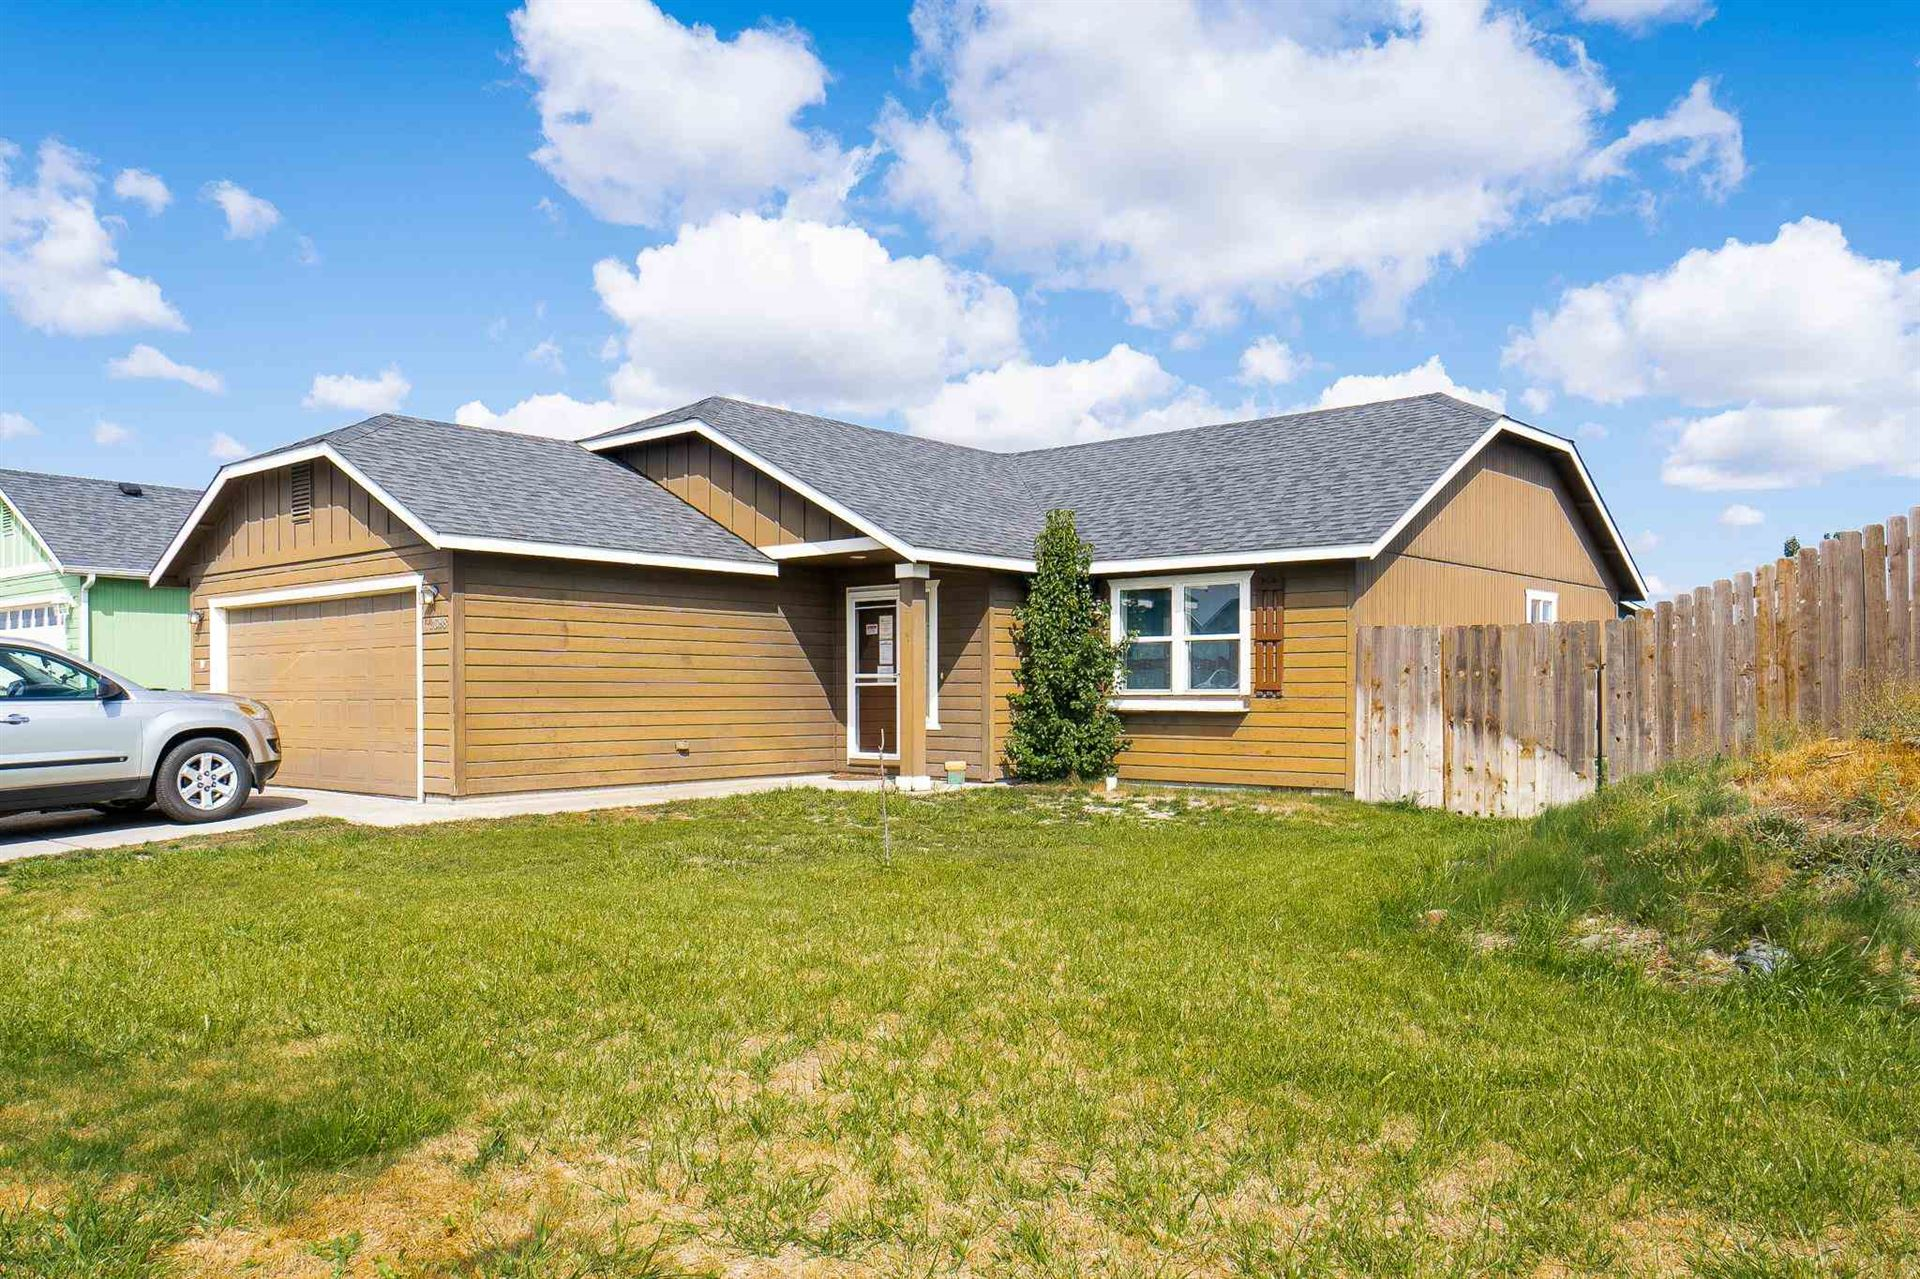 12398 W 2nd Ave, Airway Heights, WA 99001 - #: 202121689